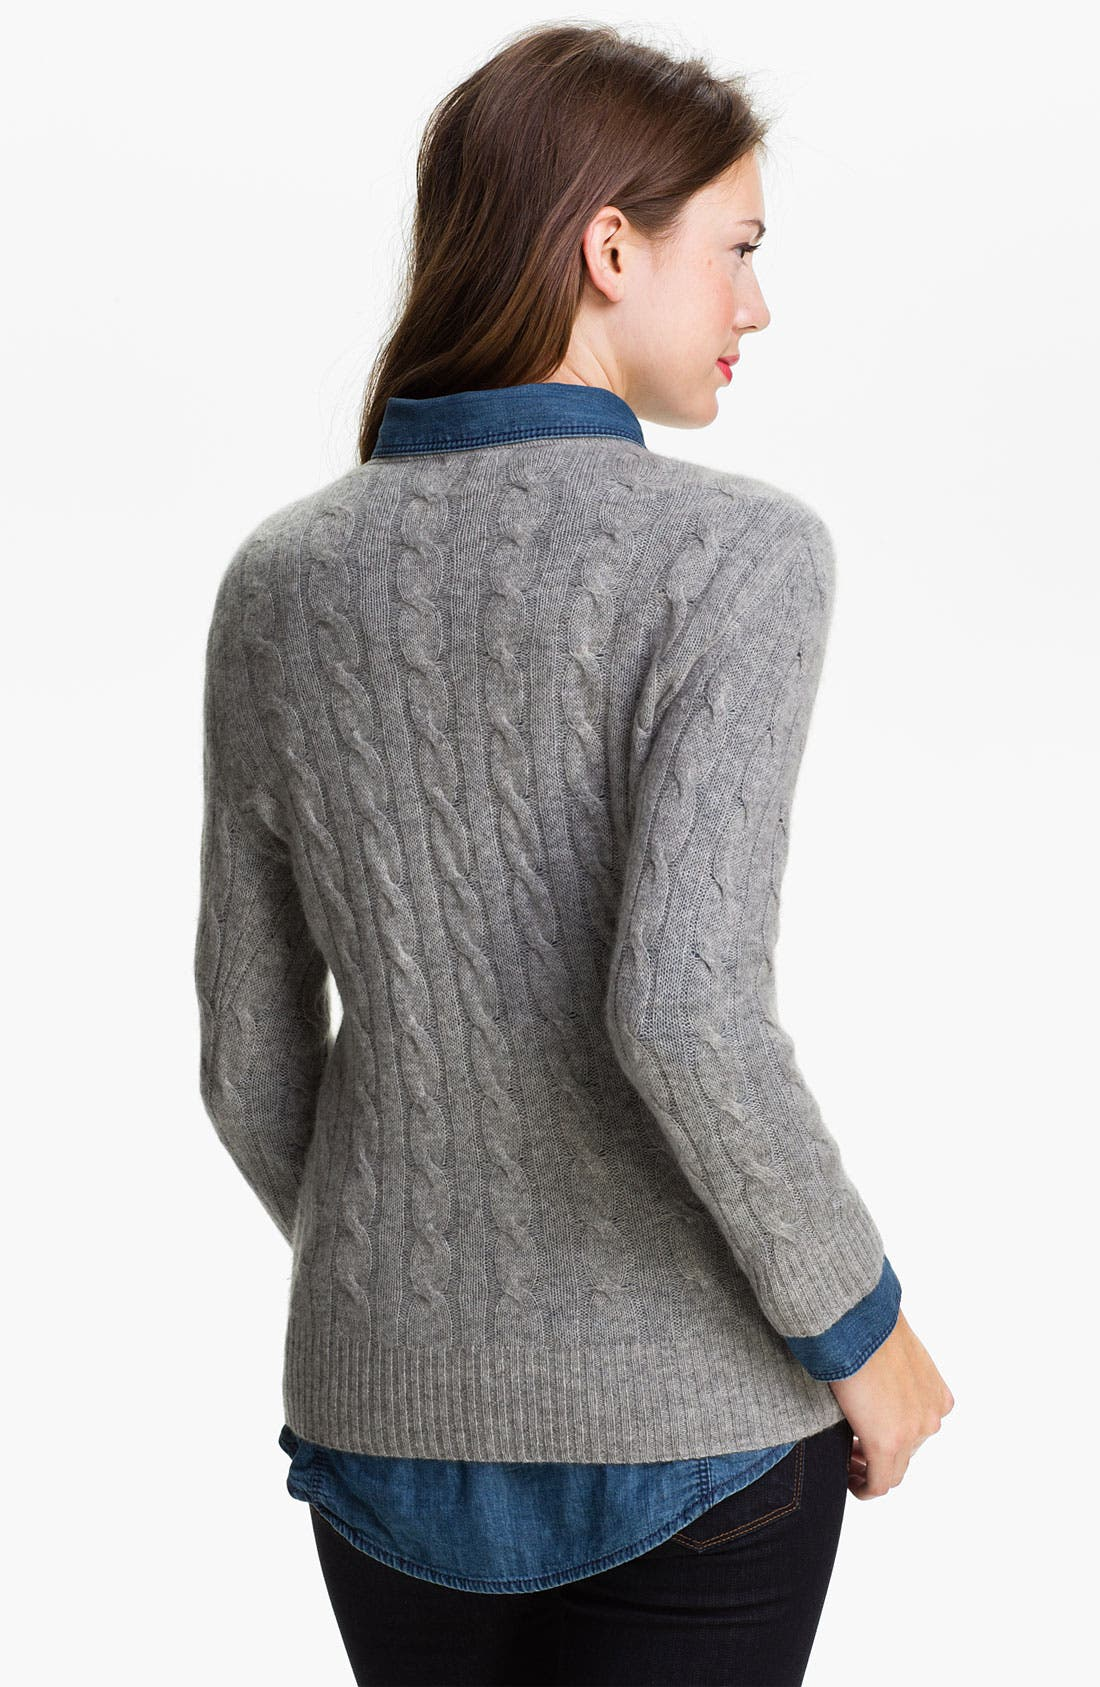 Cable Cashmere Sweater,                             Alternate thumbnail 2, color,                             062